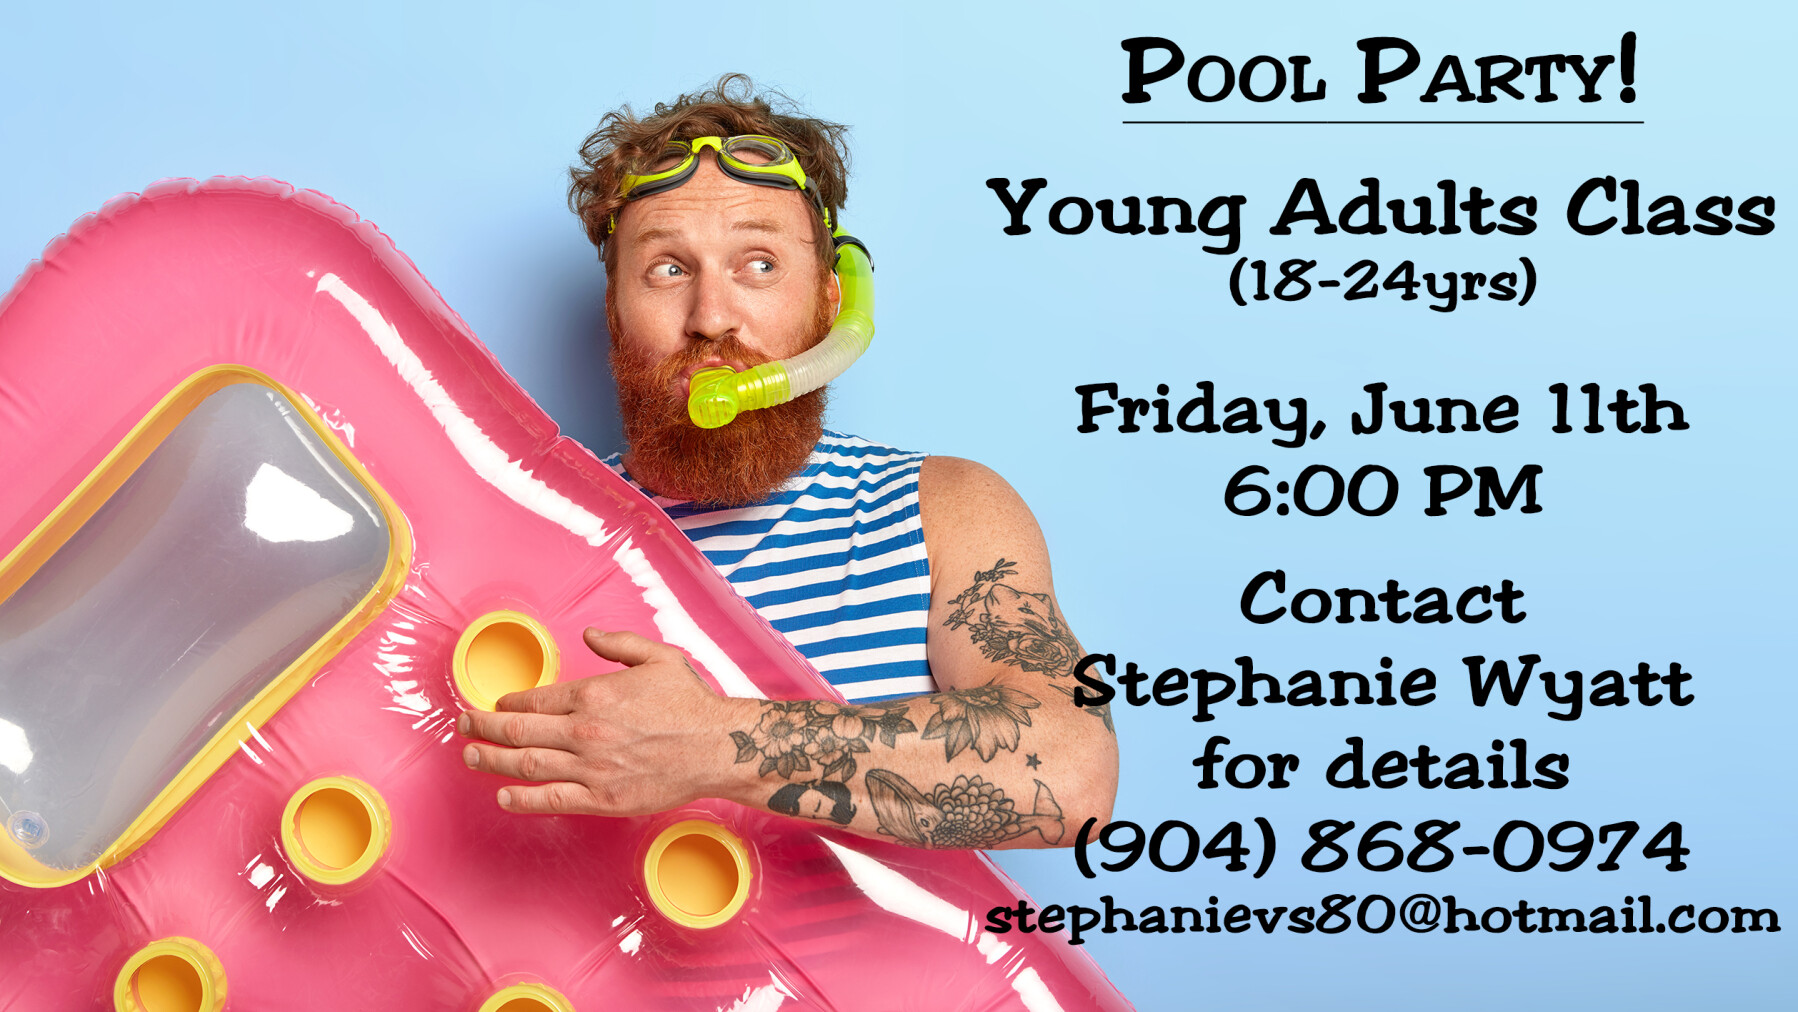 Young Adult Bible Study Class Pool Party